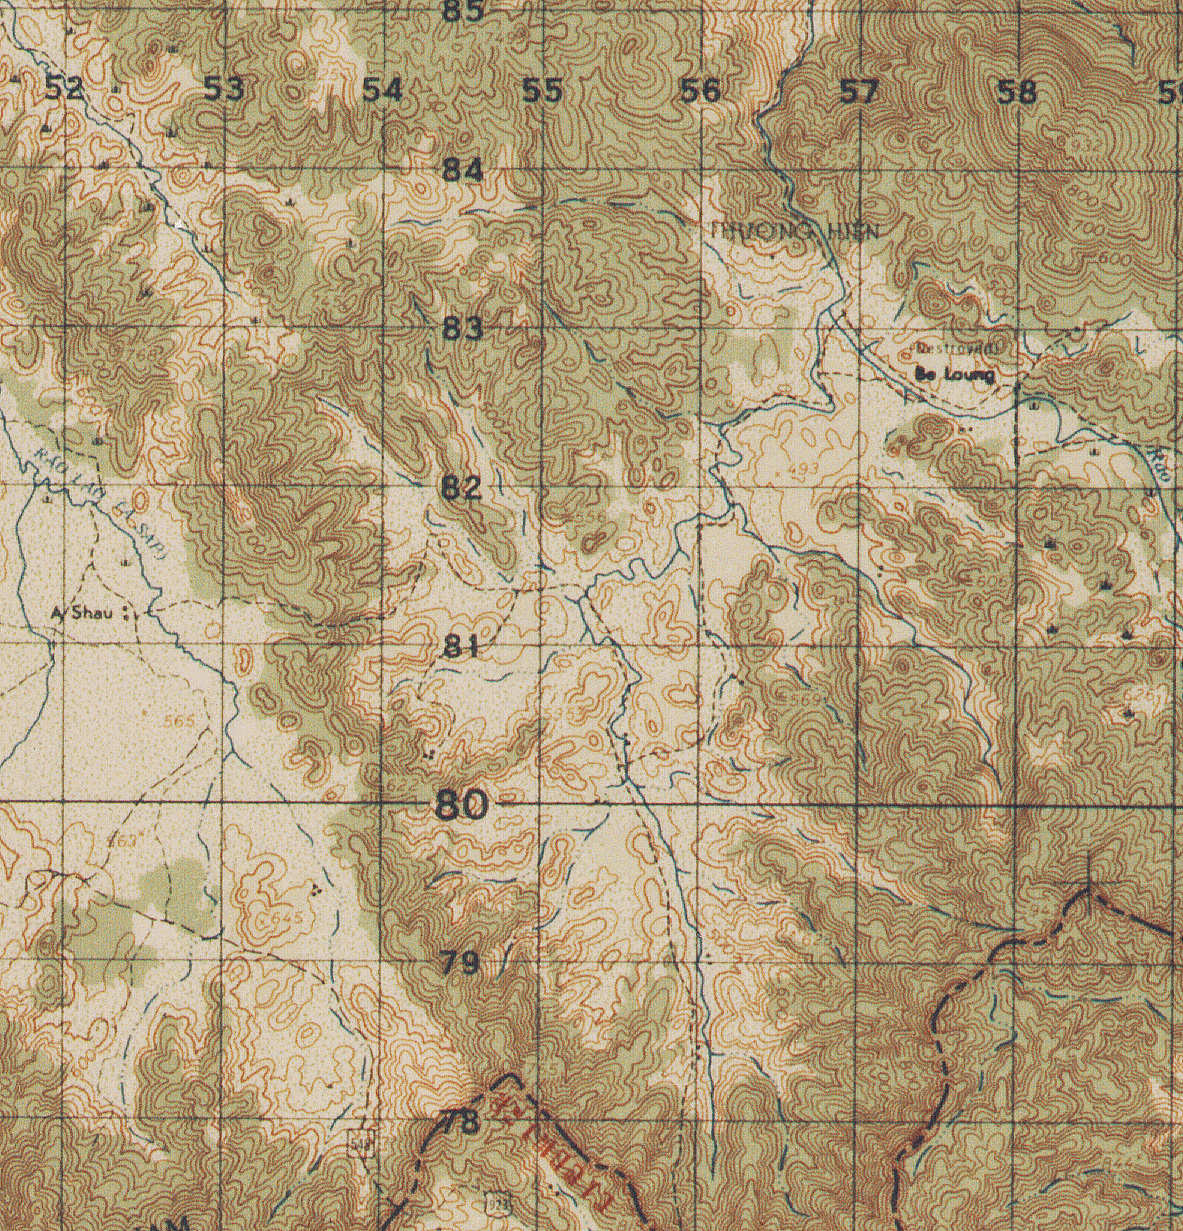 maps Map Of A Shau Valley on san luis valley map, battle of khe sanh map, loc ninh vietnam map, battle of hamburger hill map, camp evans vietnam map, happy valley vietnam map, hamburger hill vietnam map,